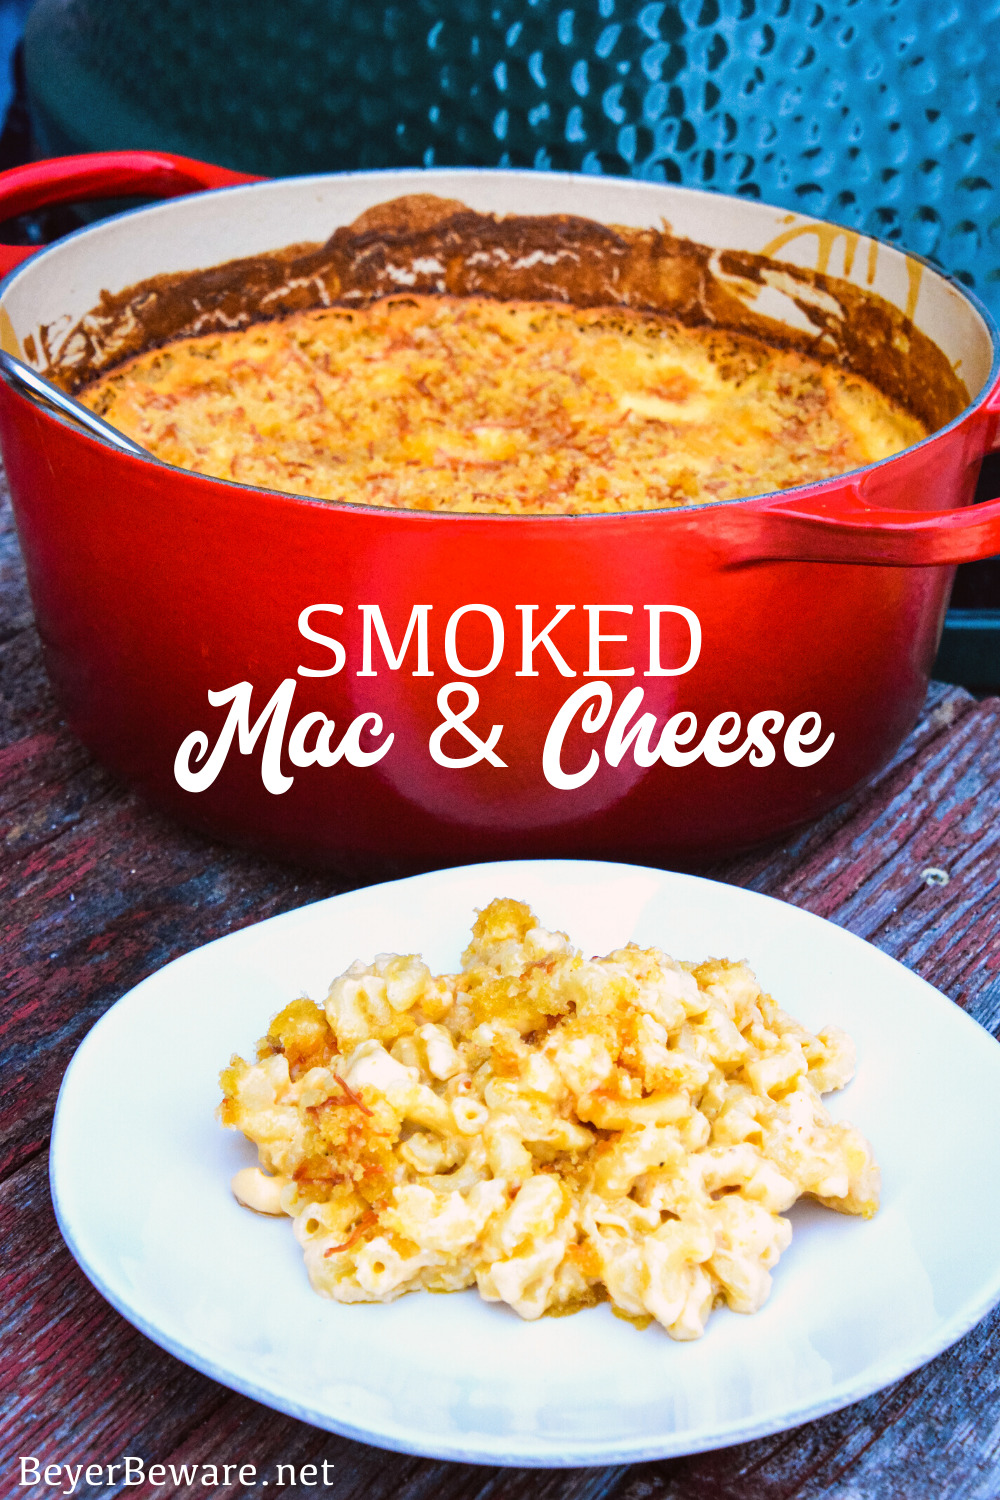 Smoked mac and cheese is an over the top macaroni and cheese recipe using a cheesy garlic white sauce combined with four kinds of cheese and then smoked on the Big Green Egg for an hour.